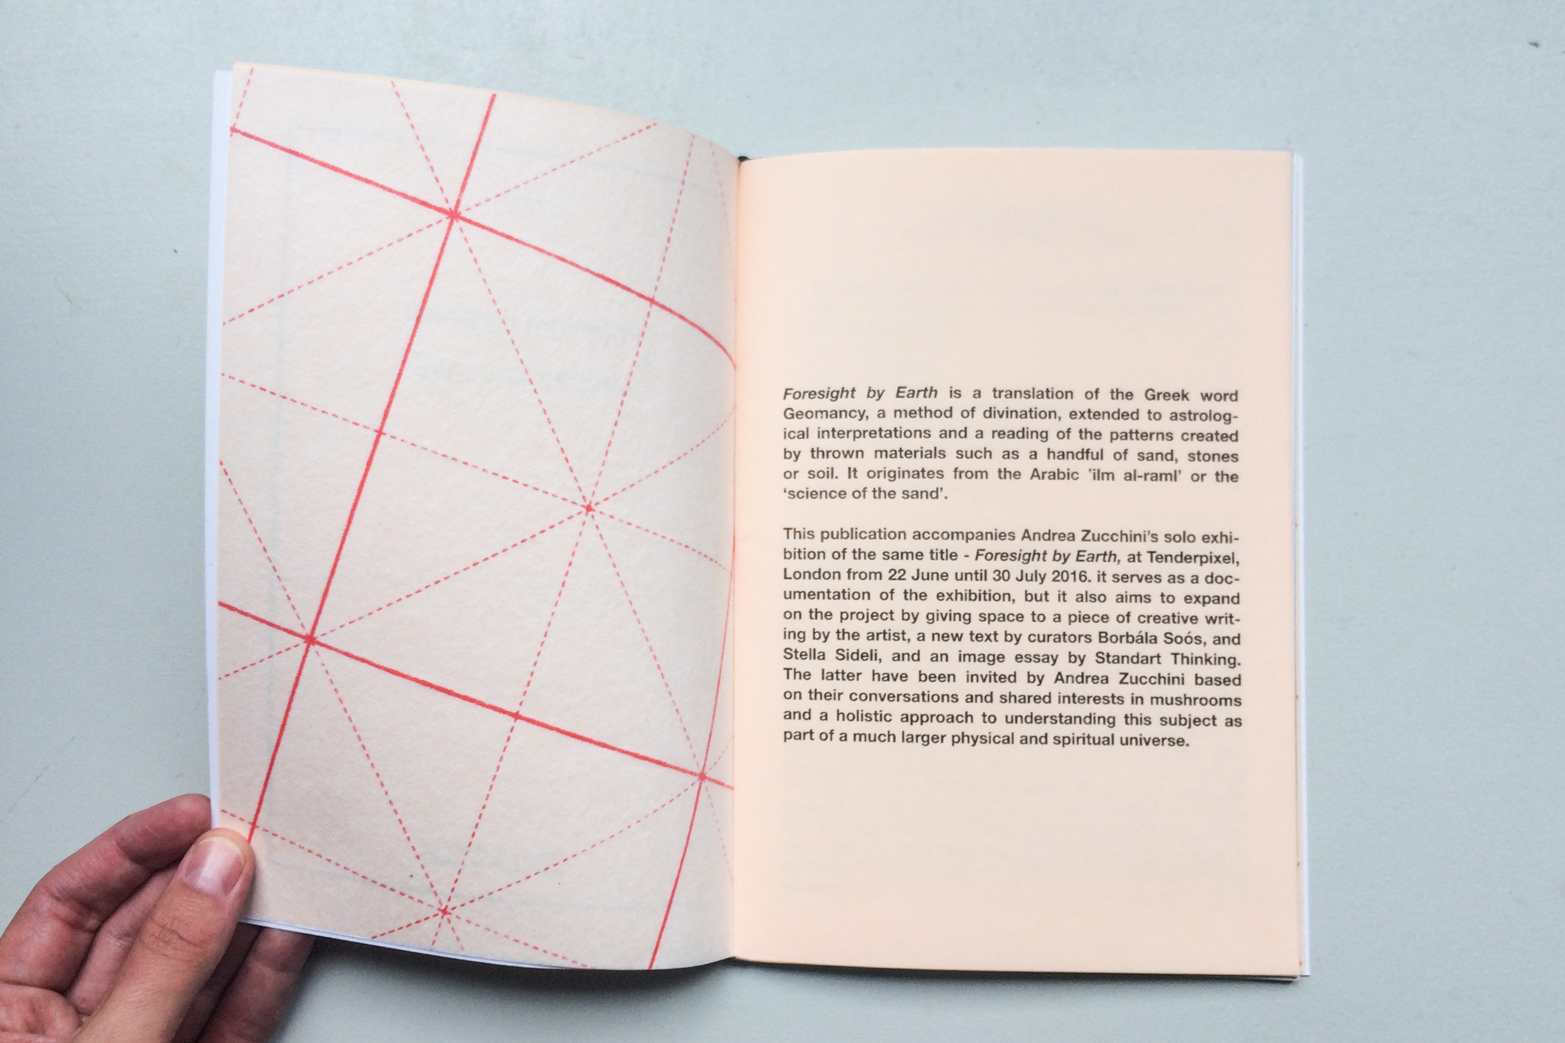 Foresight by Earth, publication, produced by Tenderpixel in 2016, on the occasion of Andrea Zucchini's solo show by the same title. Designed by Rowena Harris.